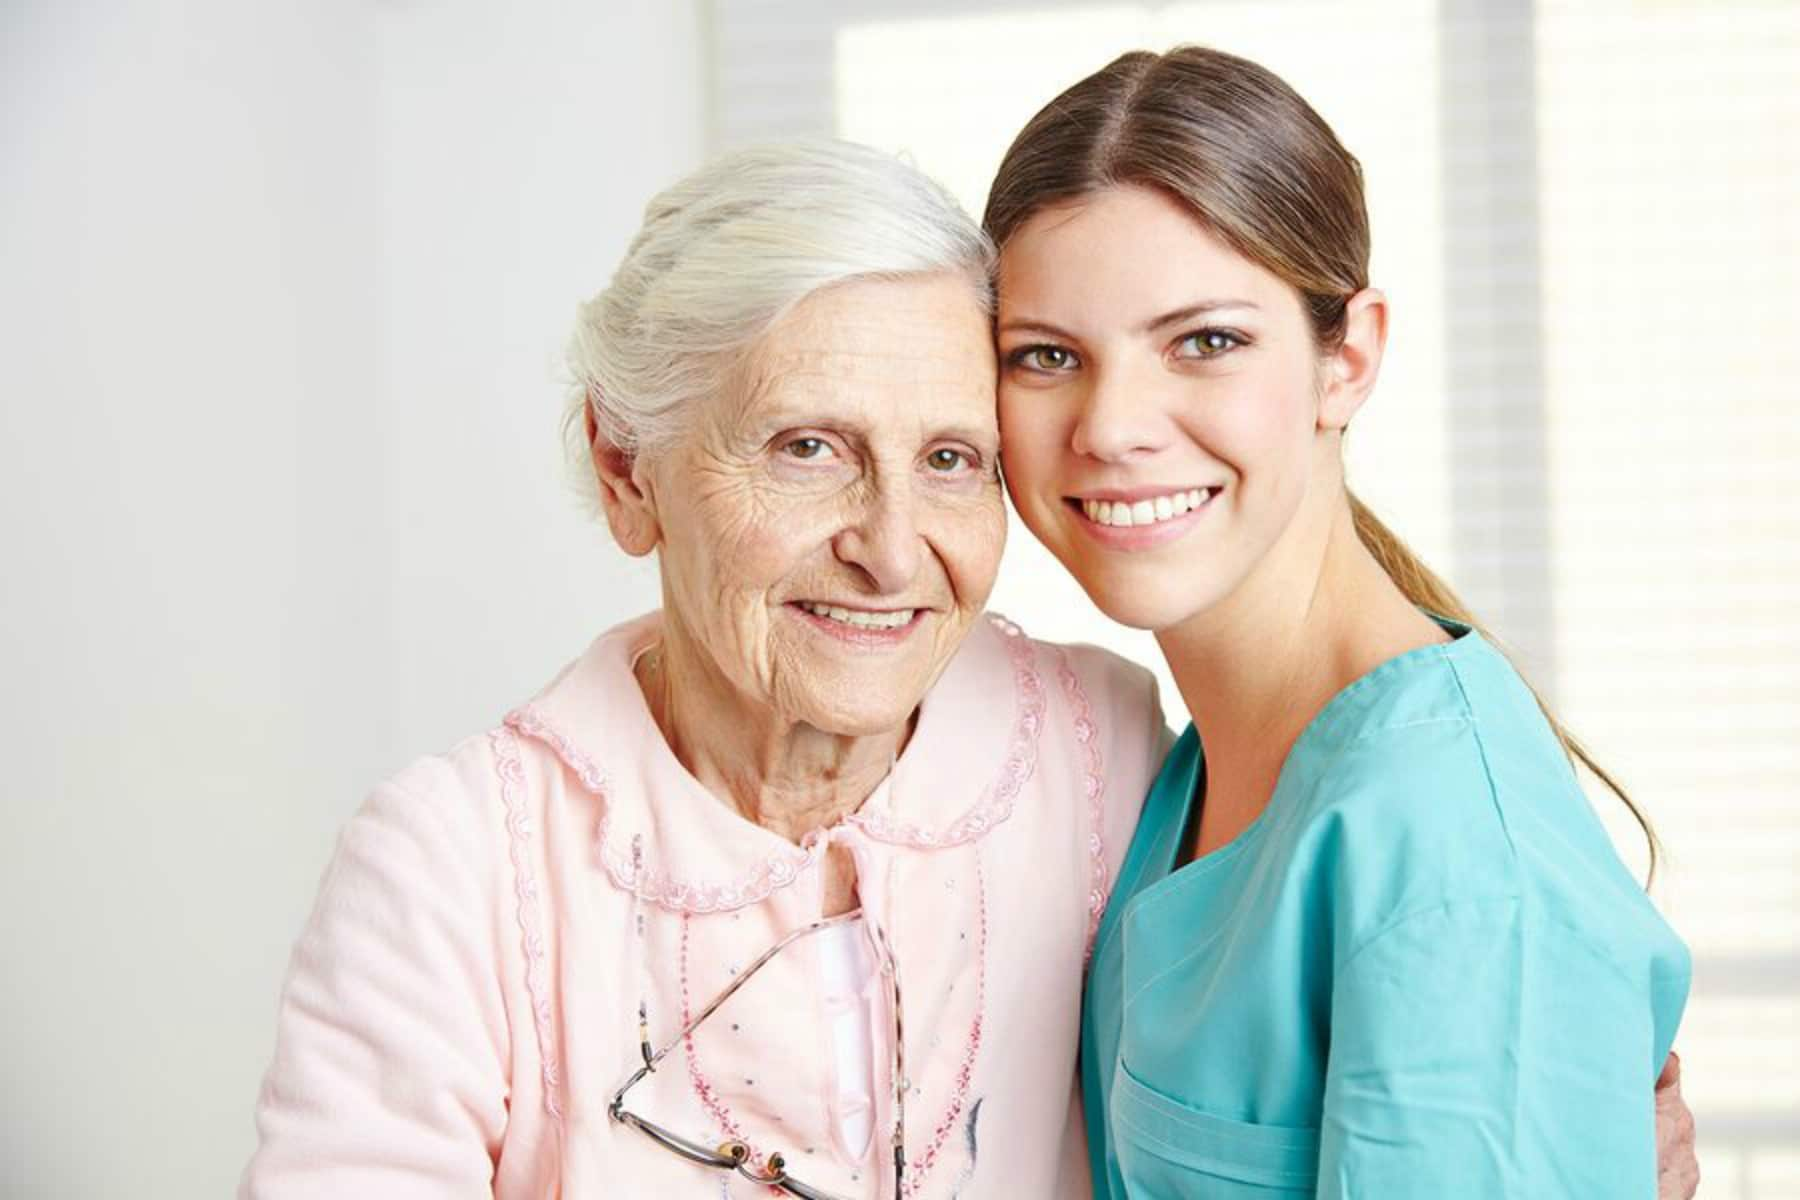 Senior Care in Flowery Branch GA: Benefits of Companionship